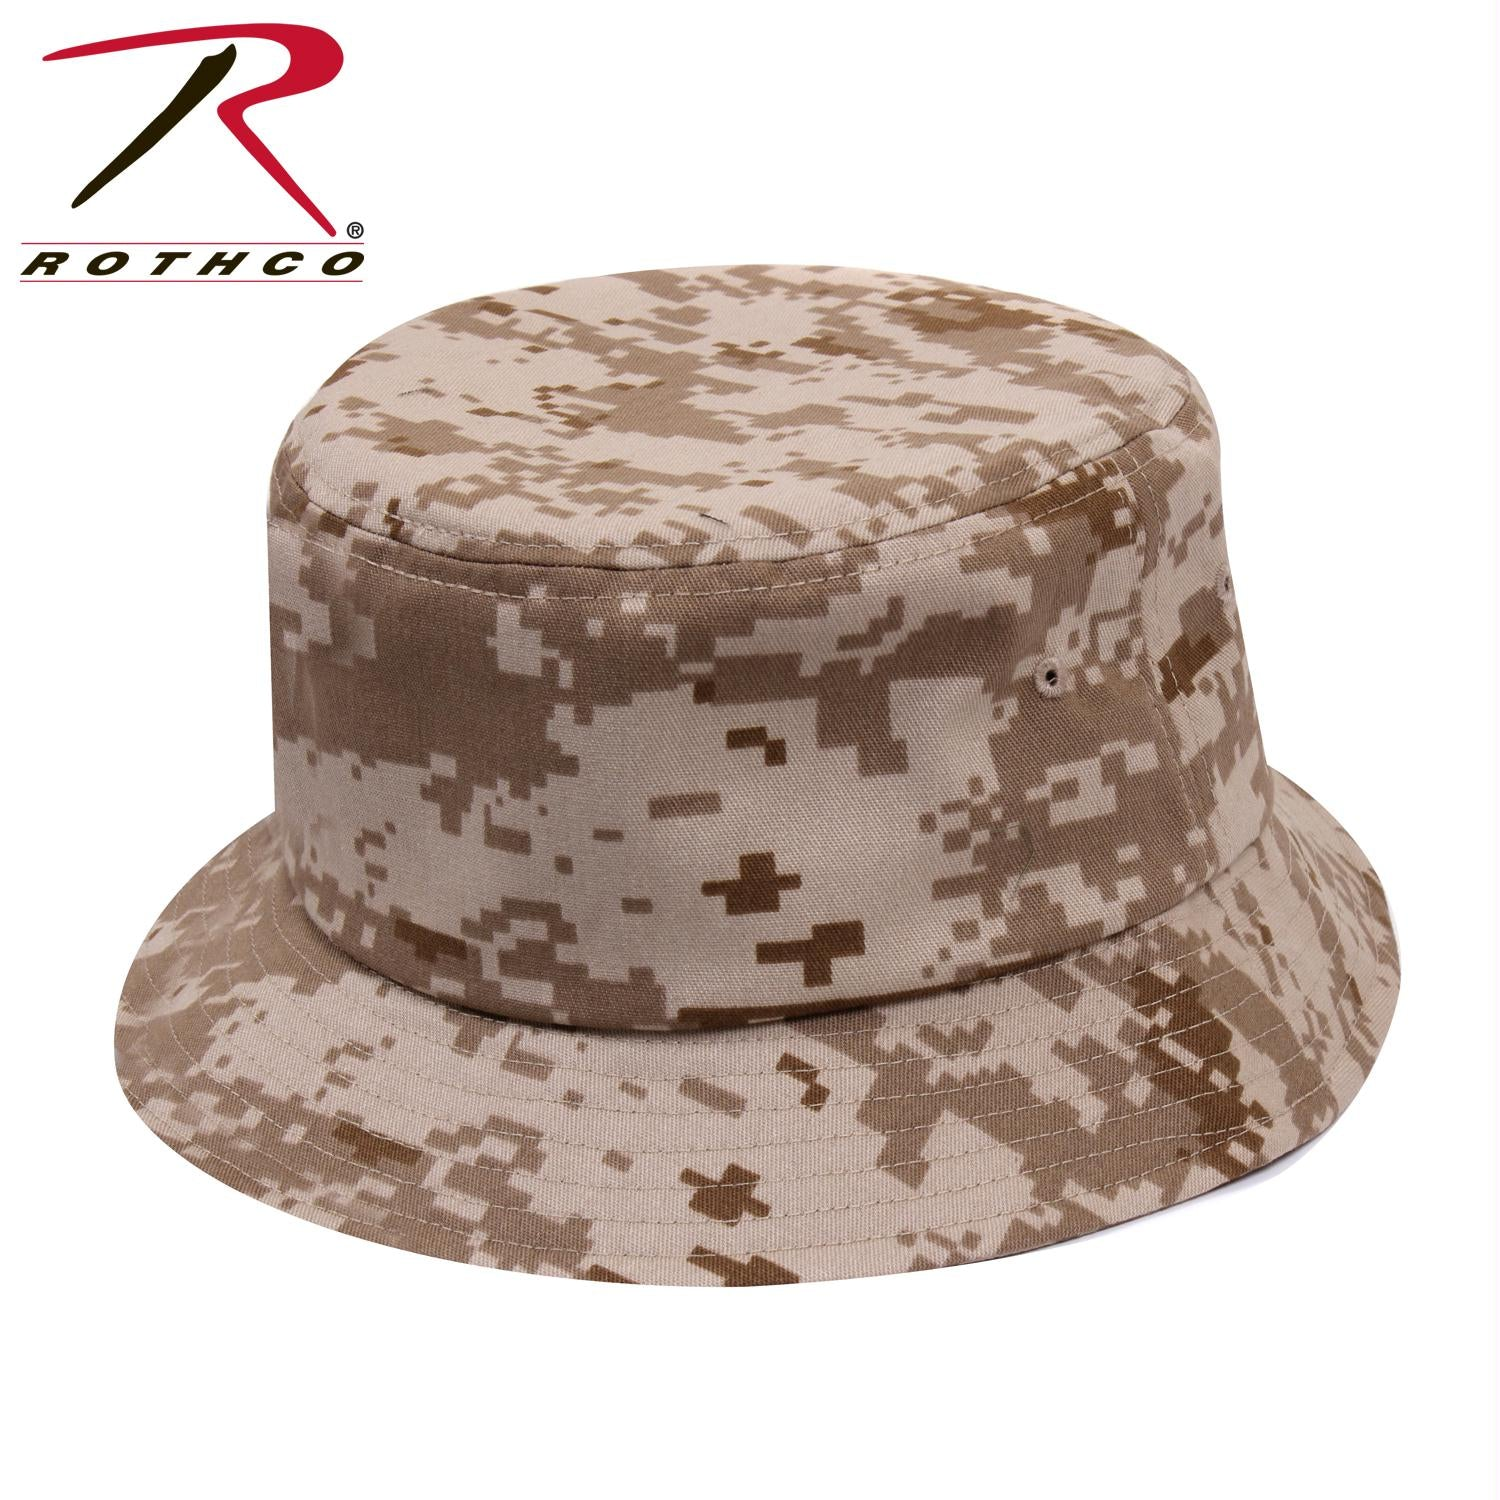 Rothco Bucket Hat - Desert Digital Camo / L/XL